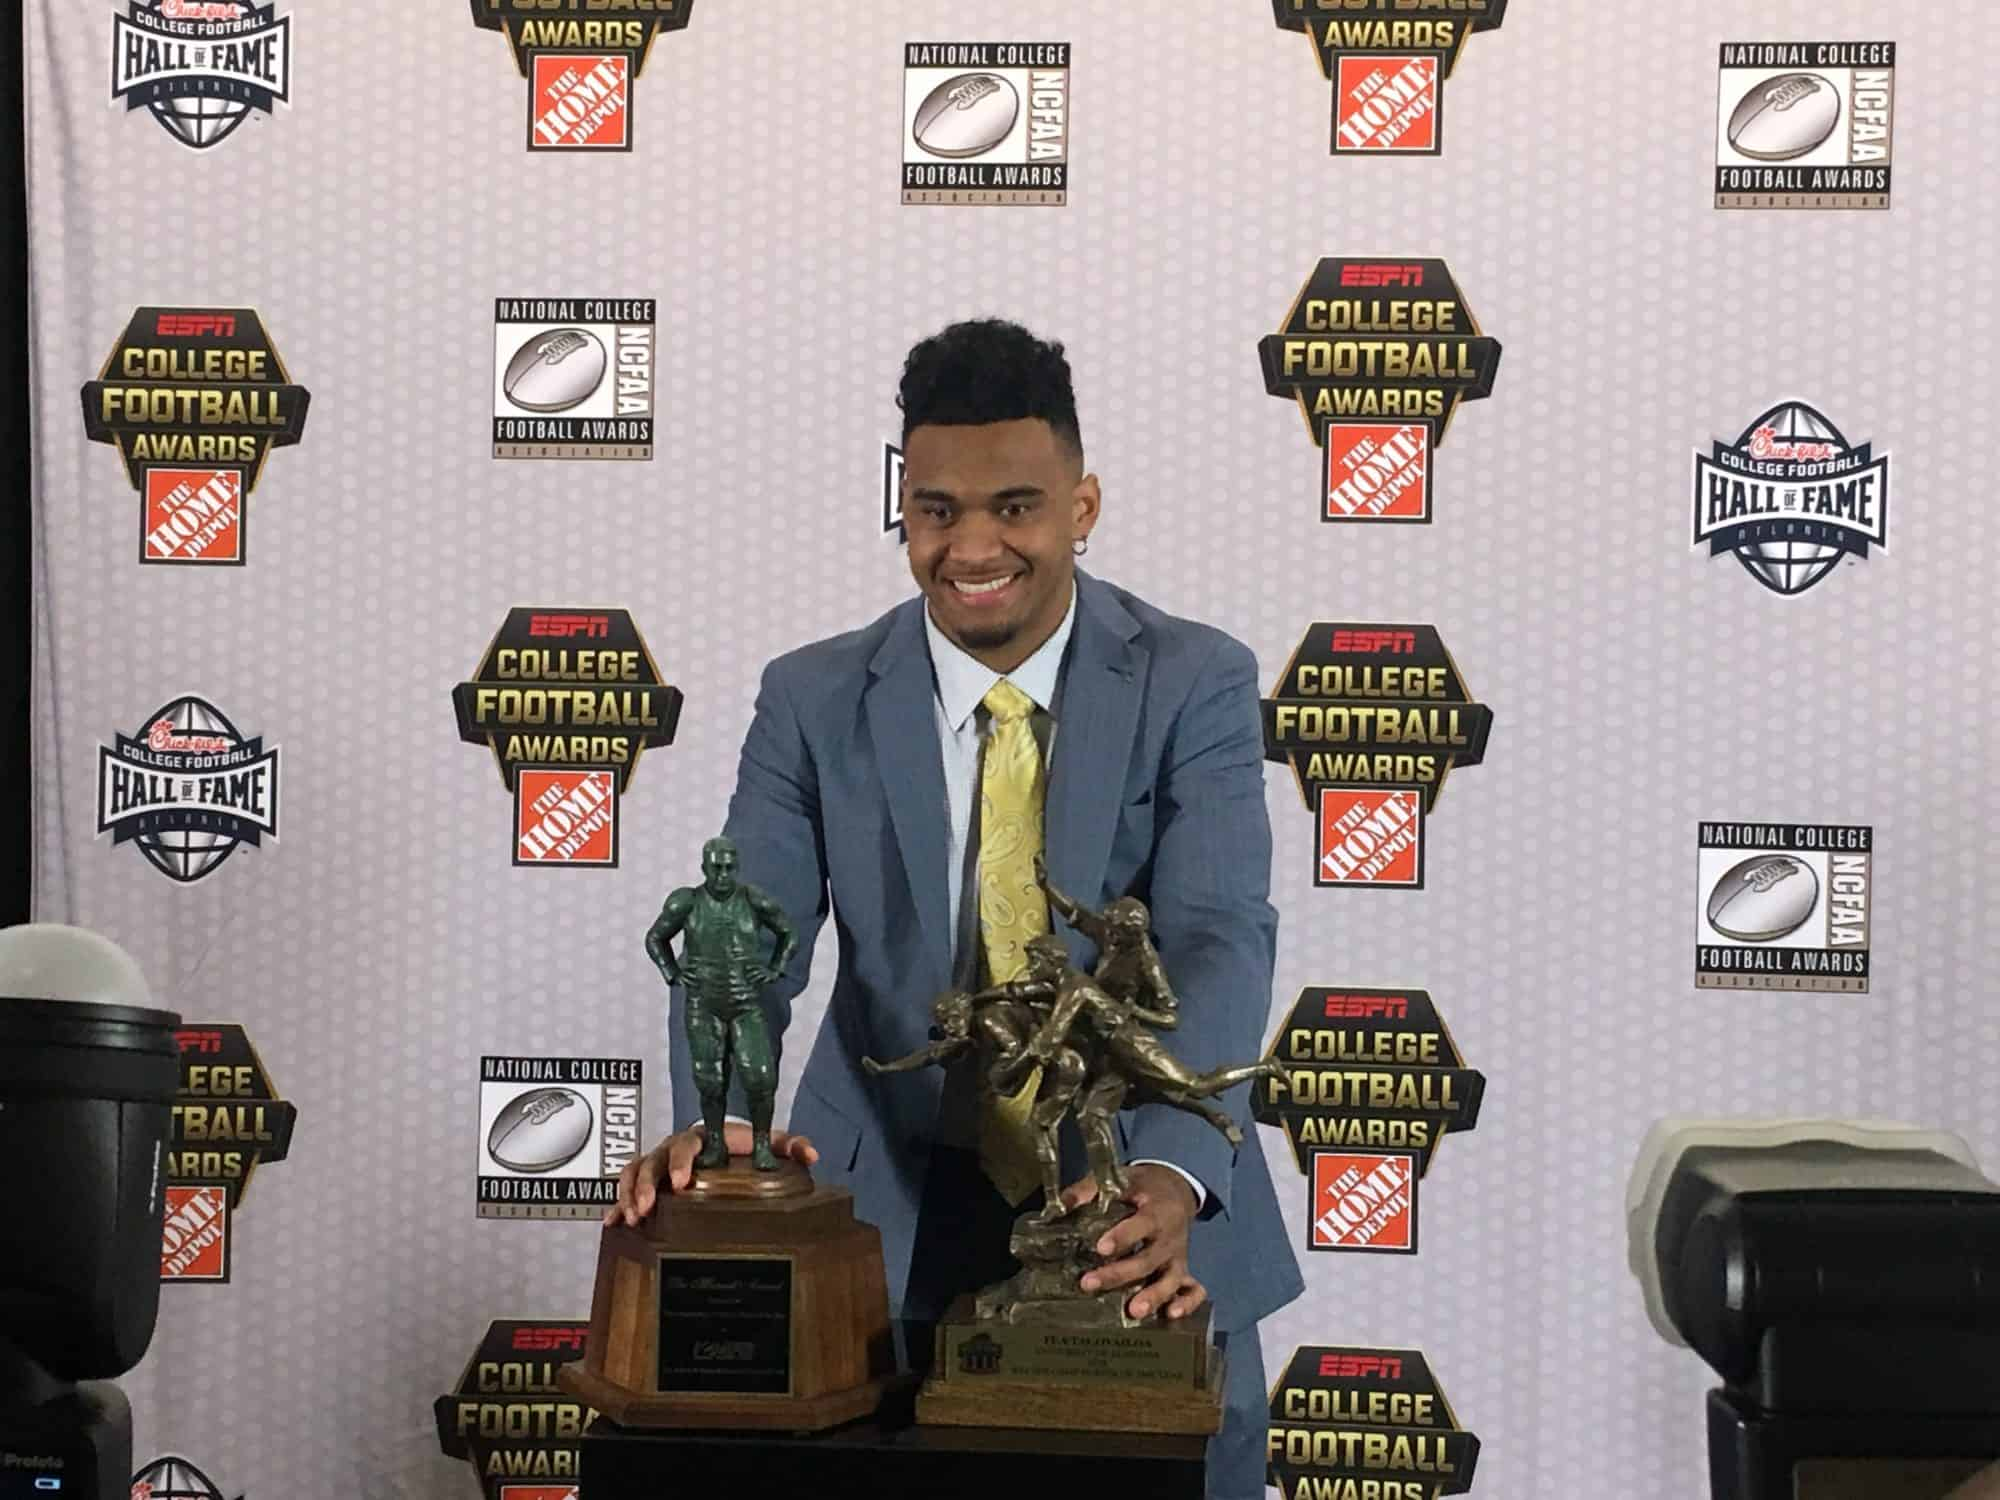 Tua Tagovailoa with his precious award